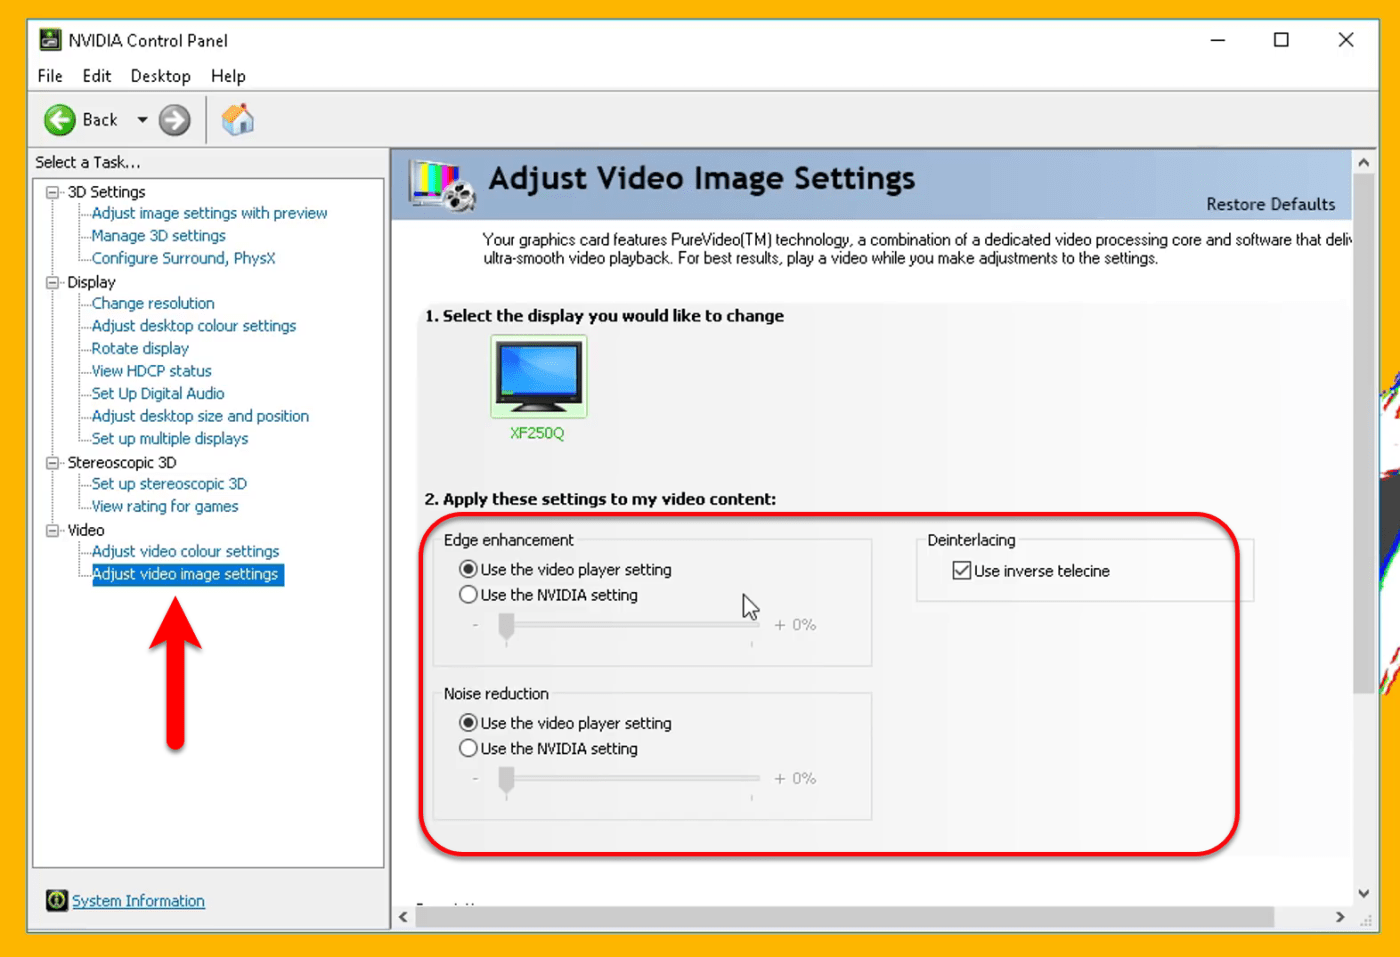 Adjust Video image settings